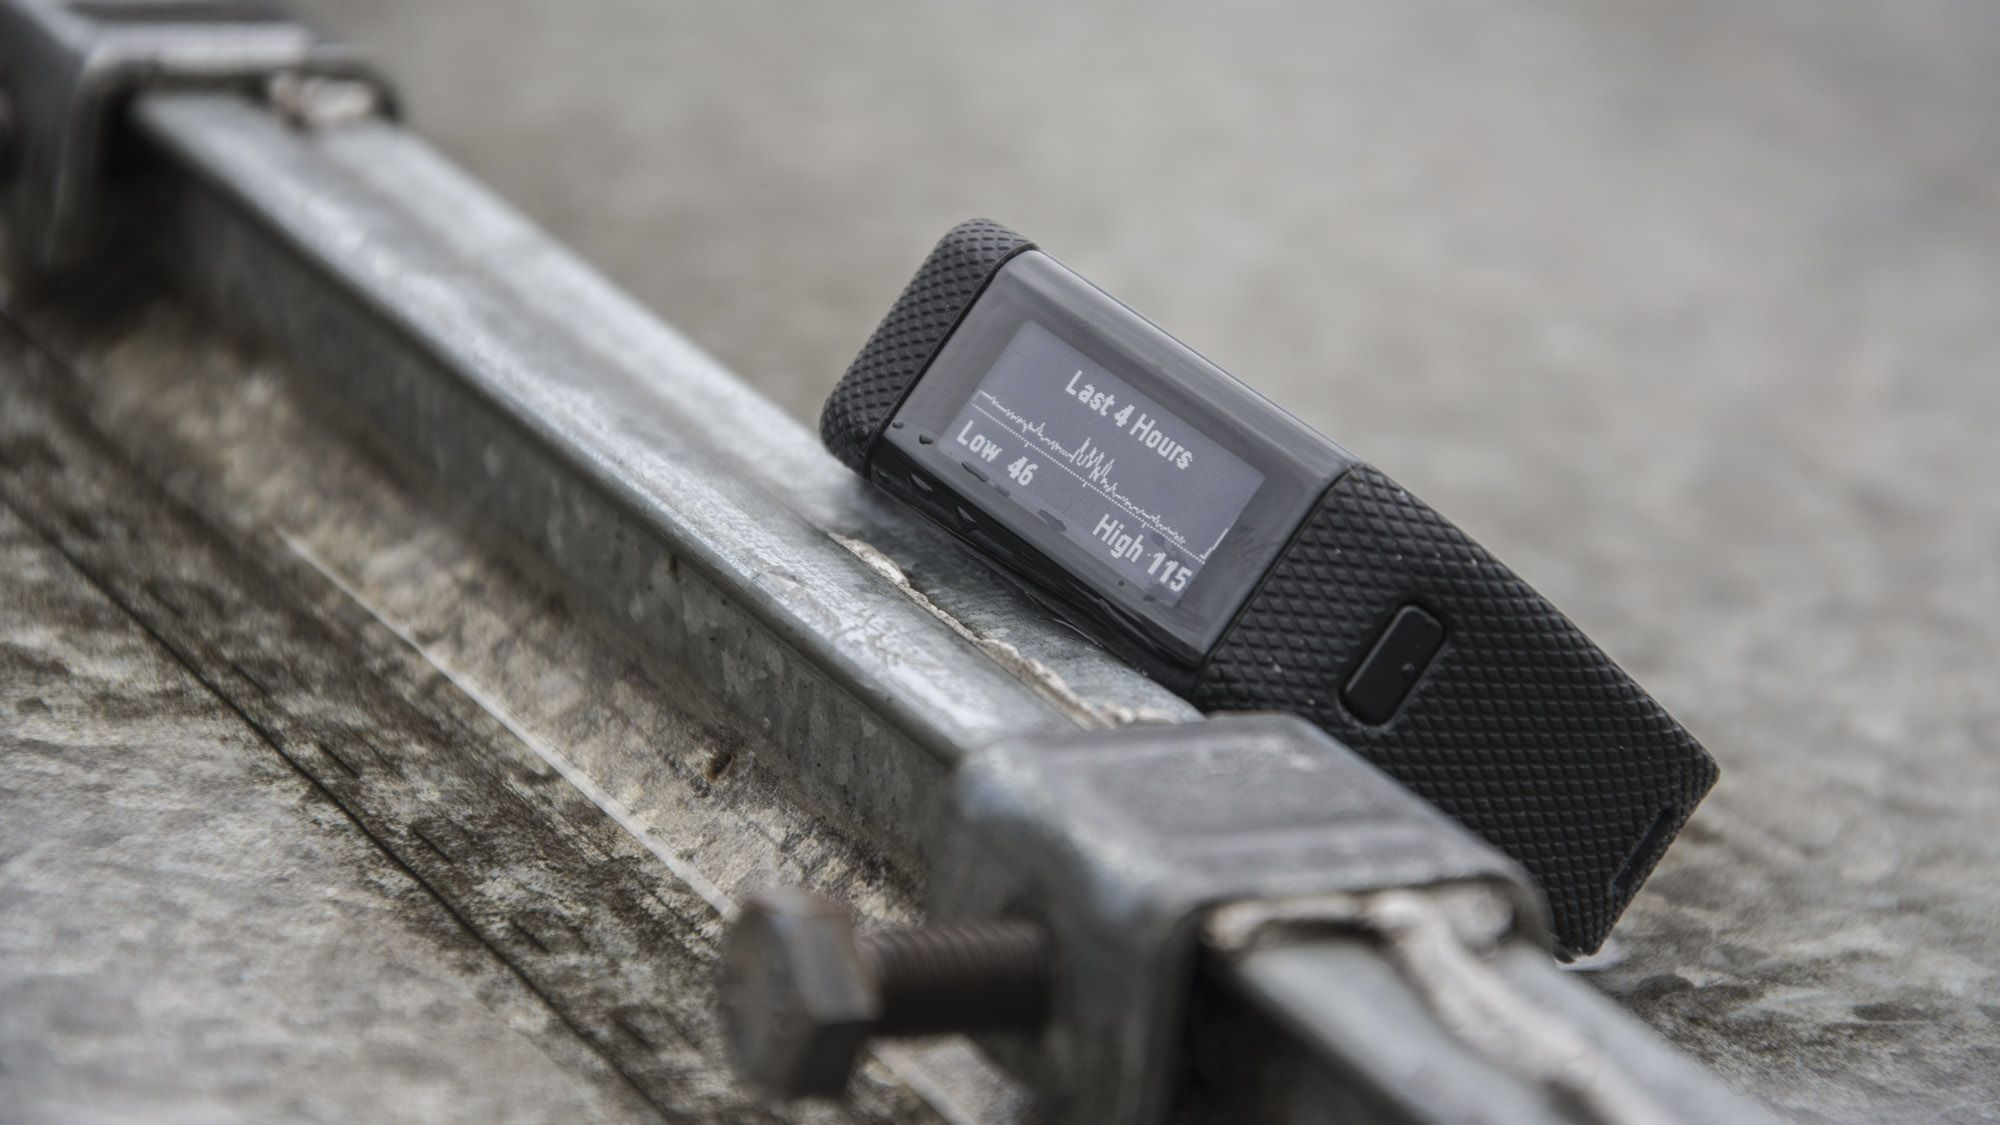 Garmin's Vivosmart HR+ fitness band has it all, and while